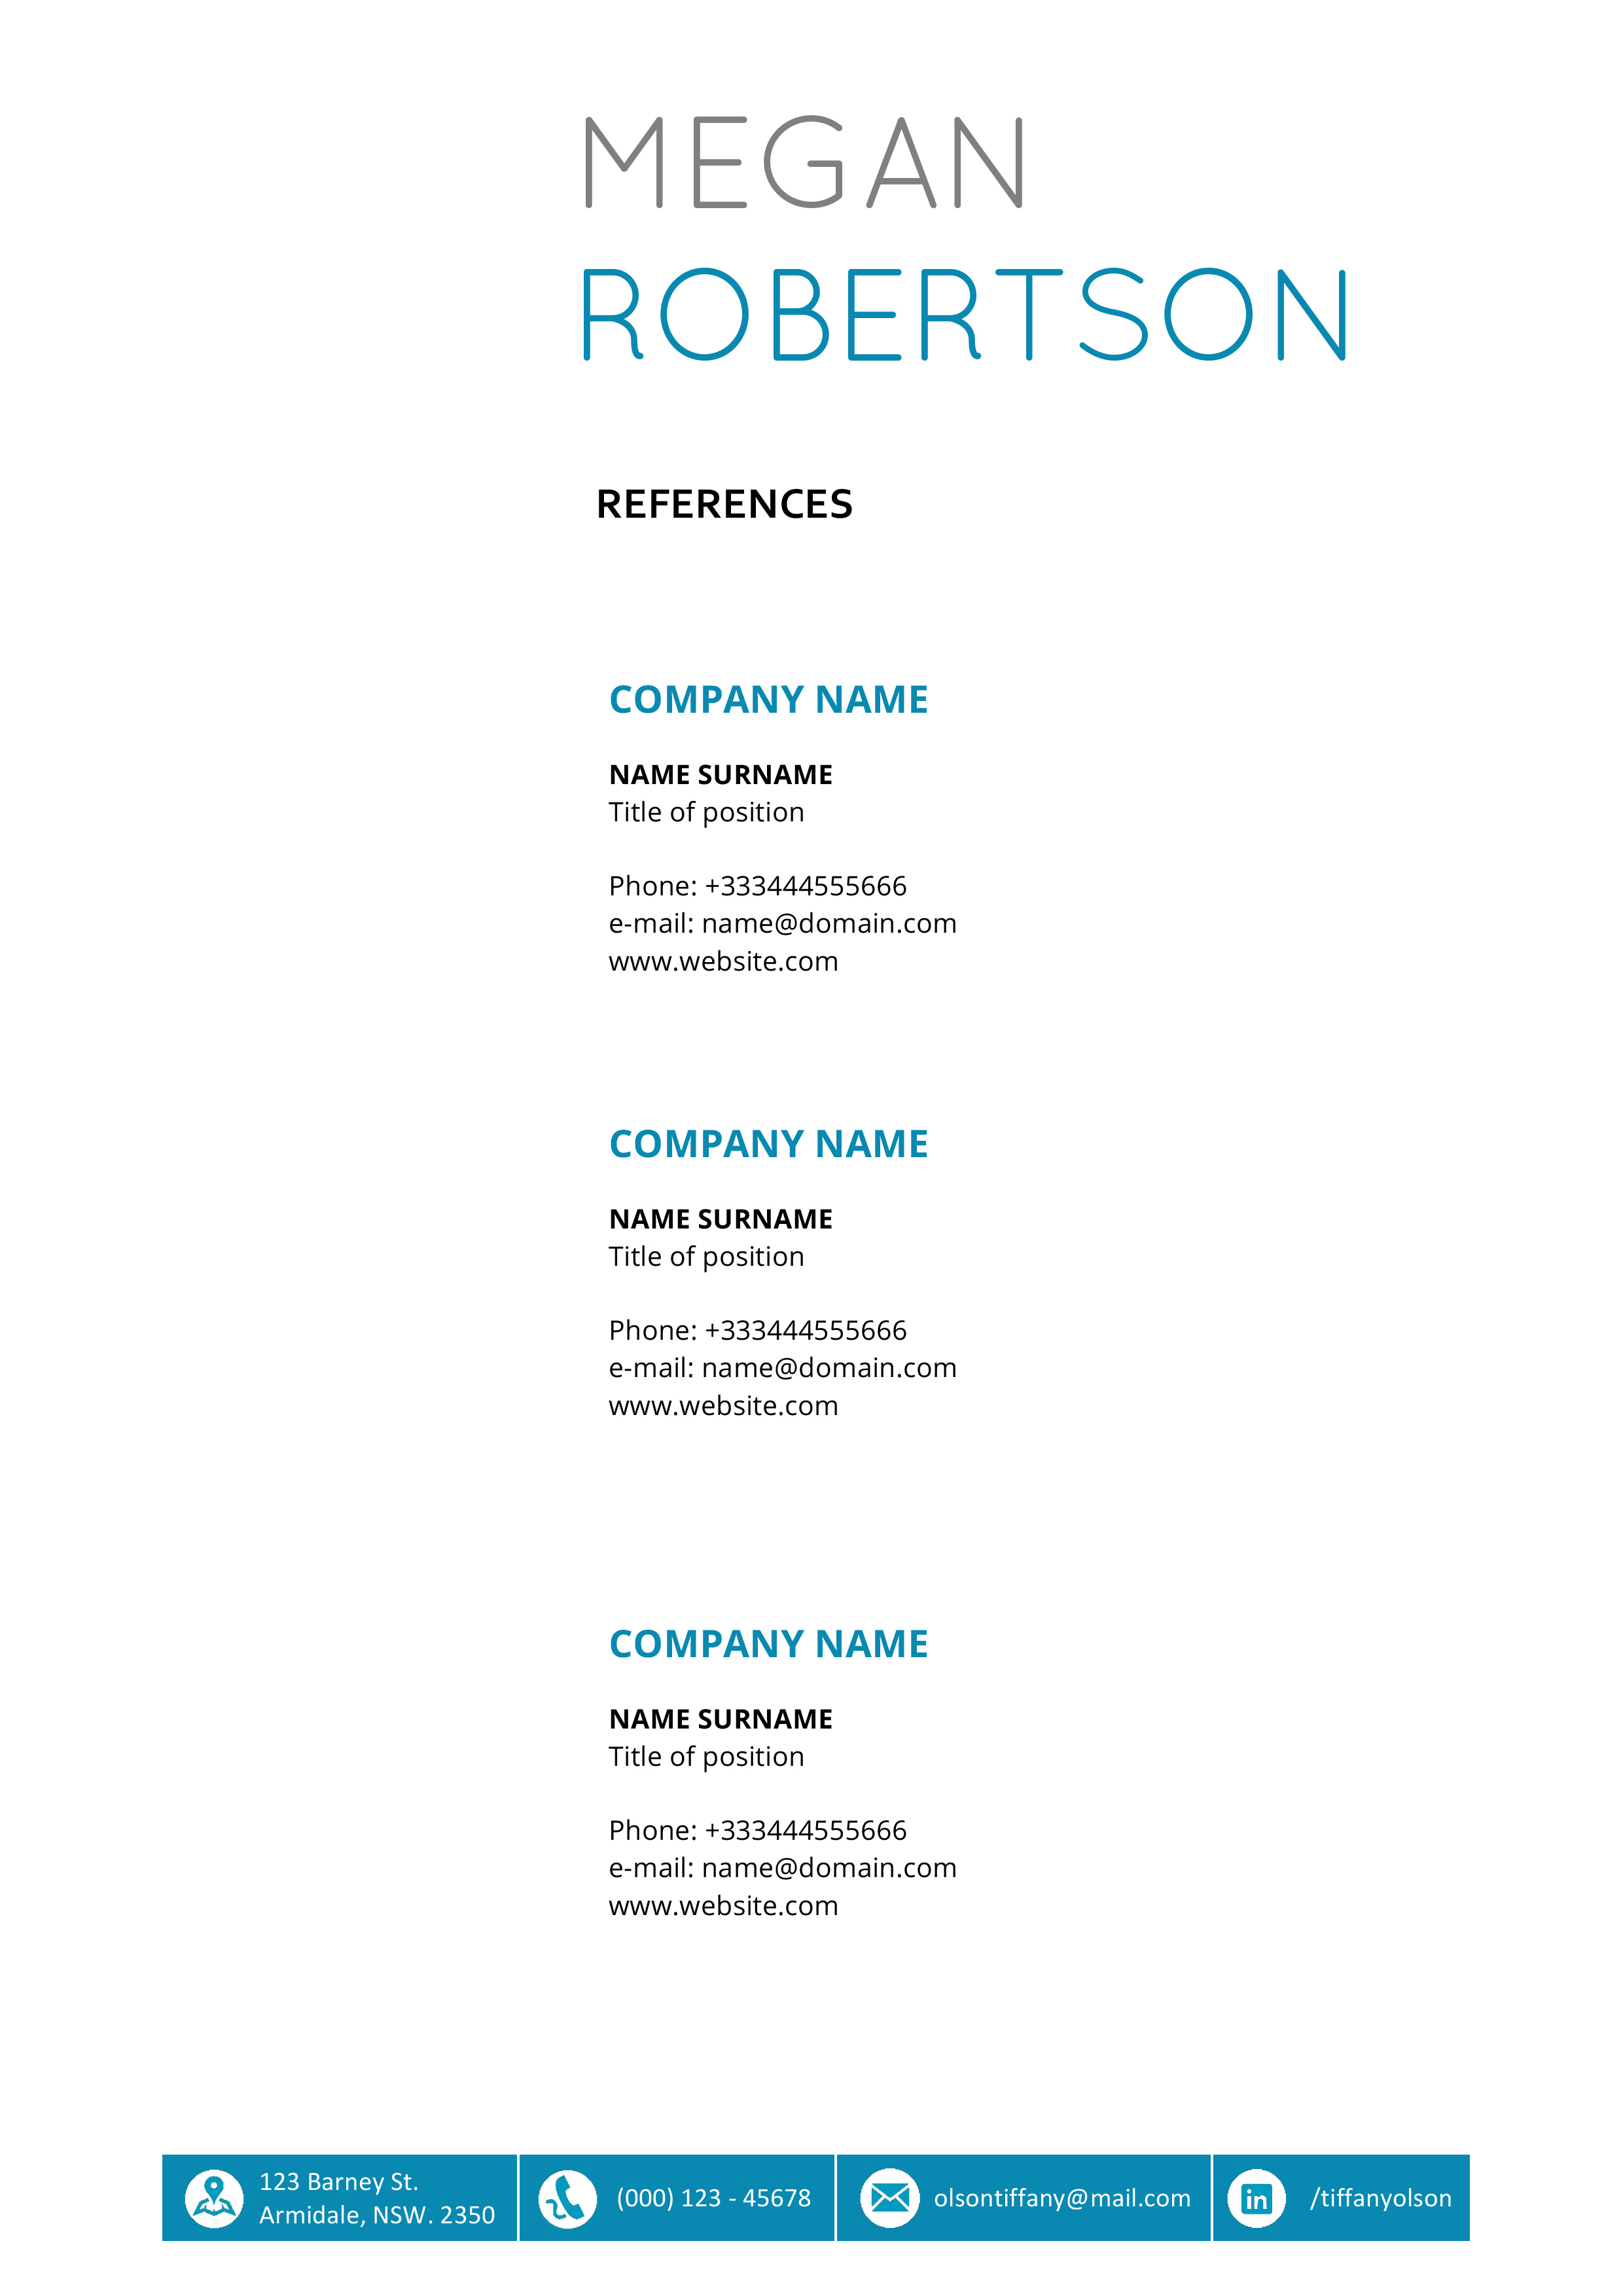 The Megan Resume - Professional Word Template